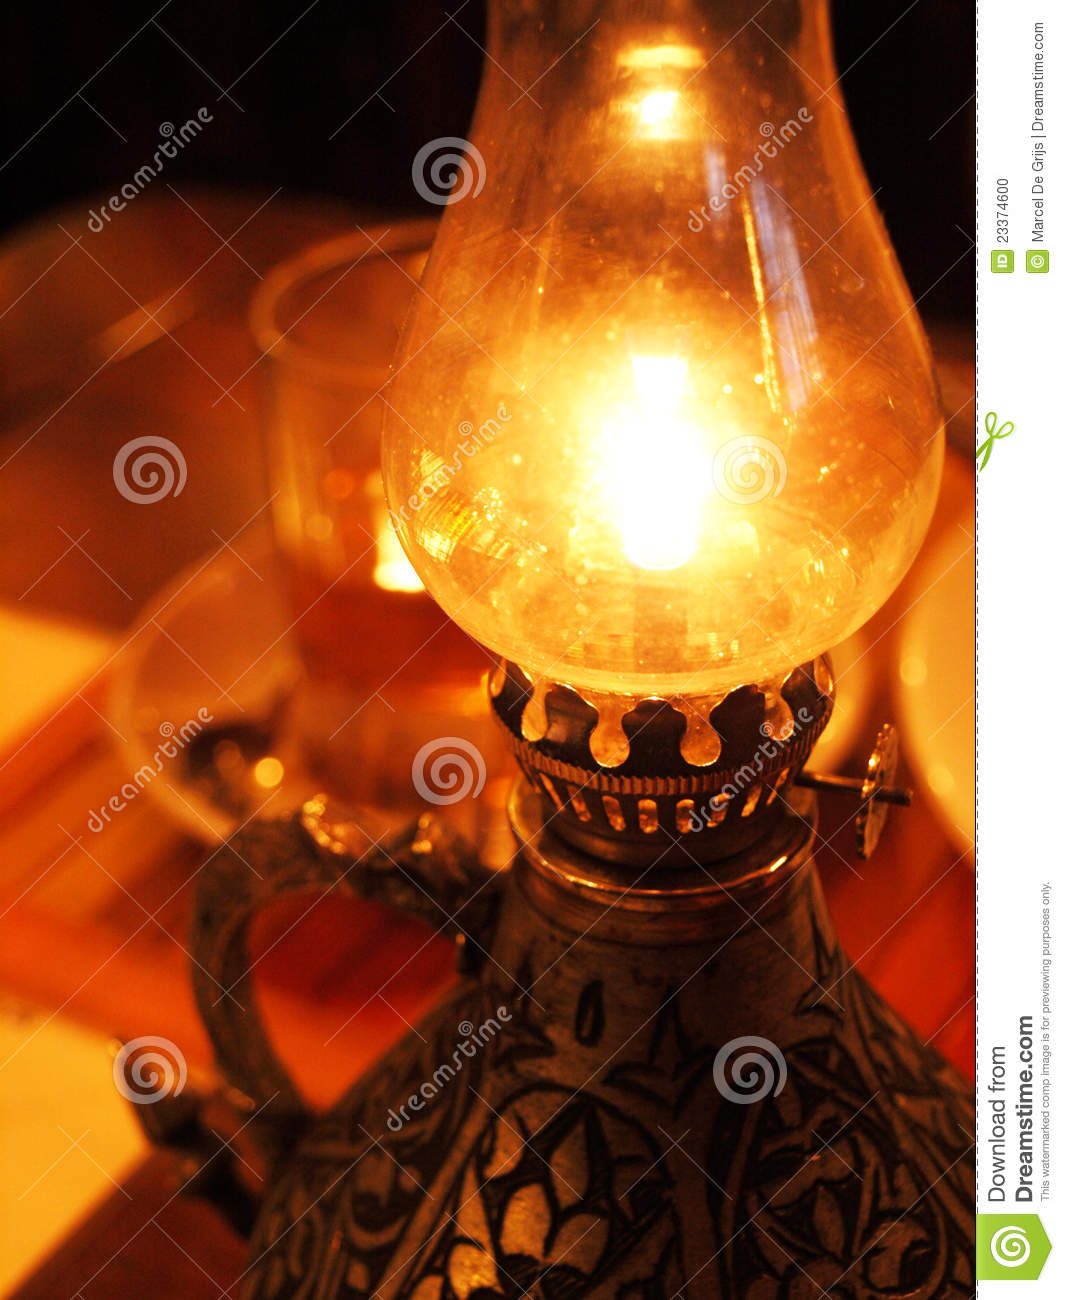 Burning oil lamp